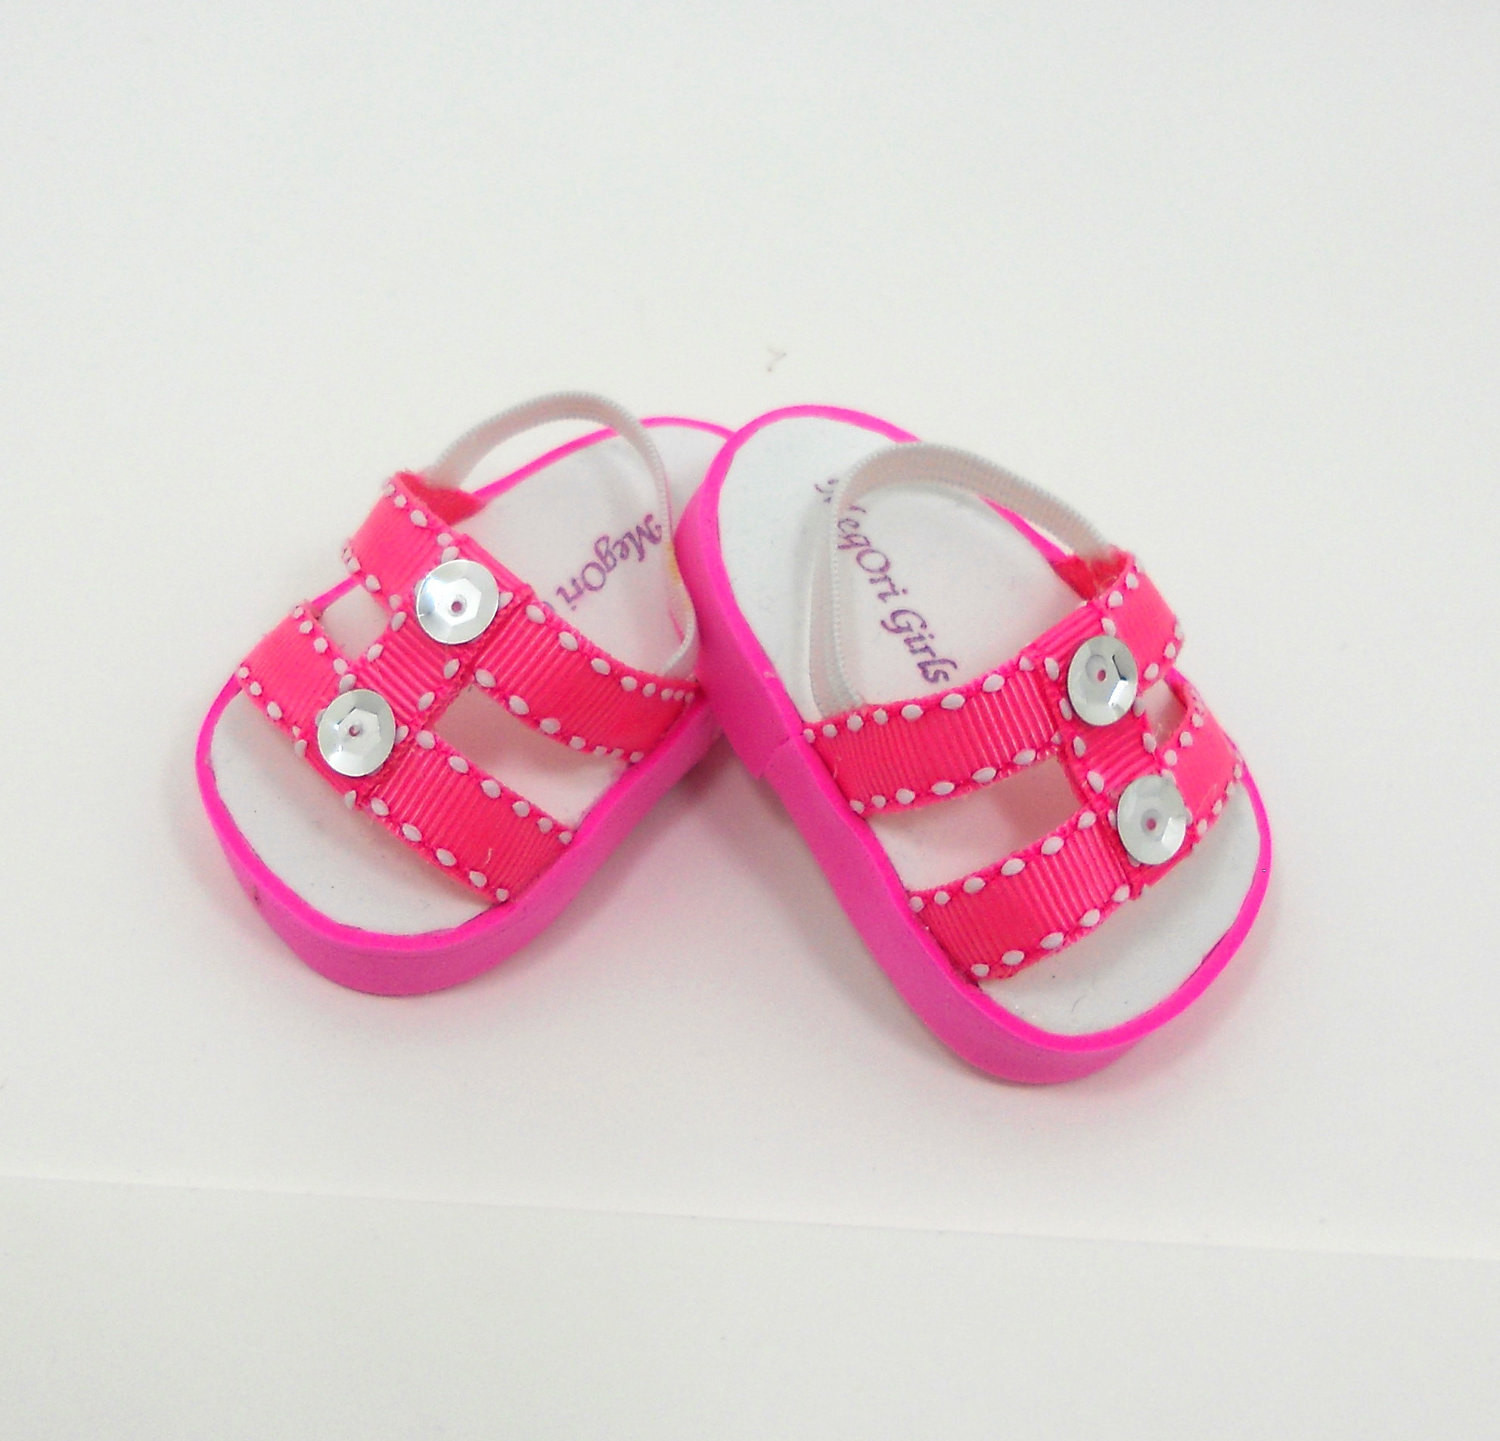 American Girl Doll Shoes Beautiful American Girl 18 Doll Shoes Sandals Hot Pink by Megorisdolls Of Attractive 48 Models American Girl Doll Shoes